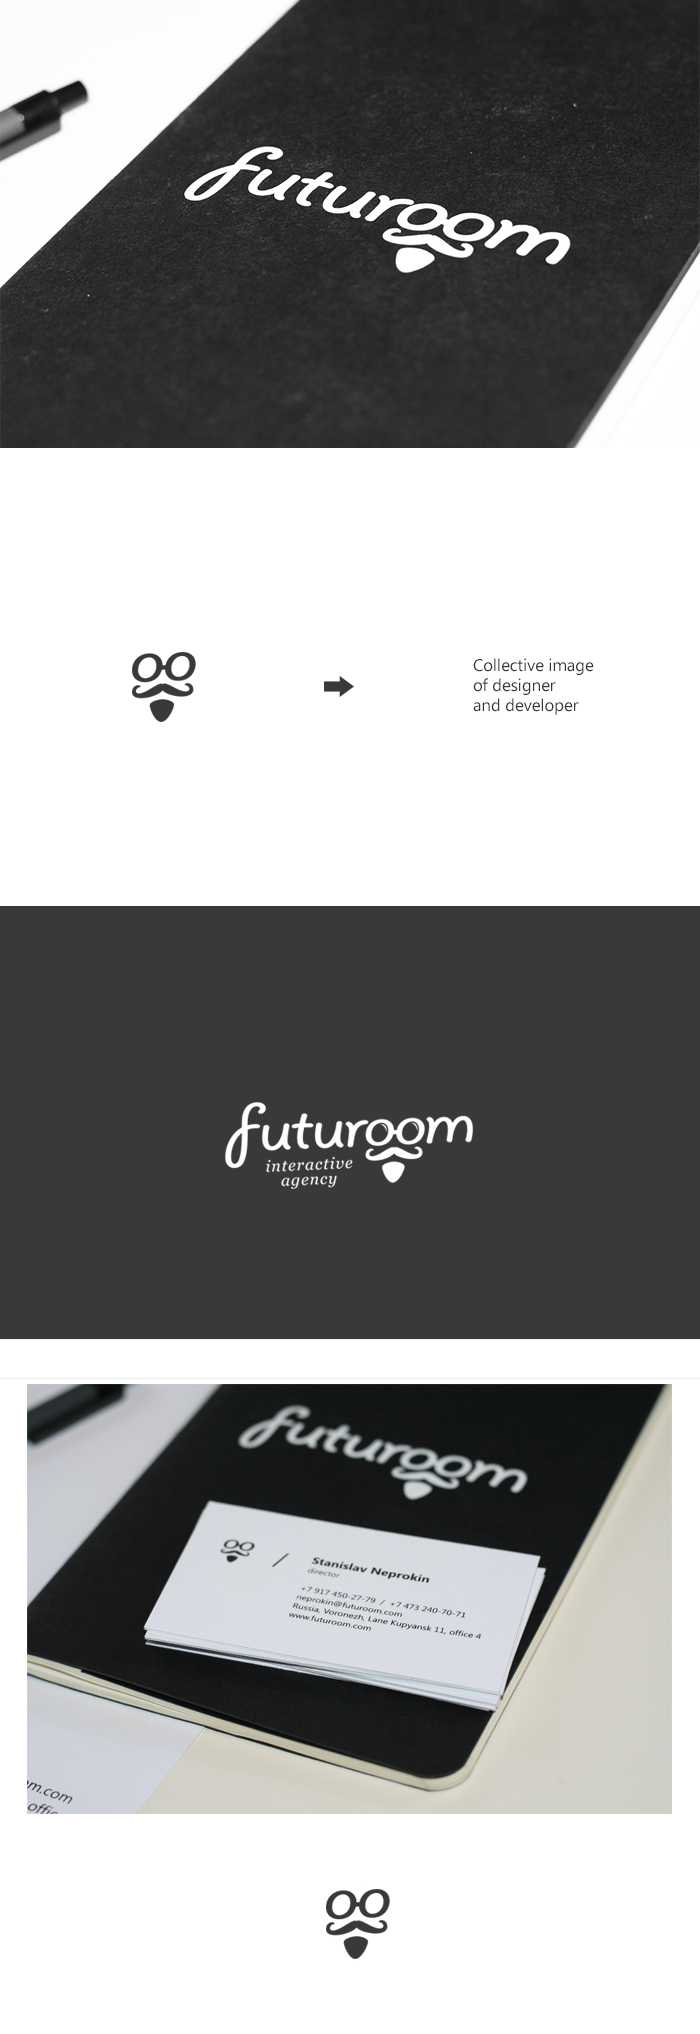 Futuroom. Interactive agency